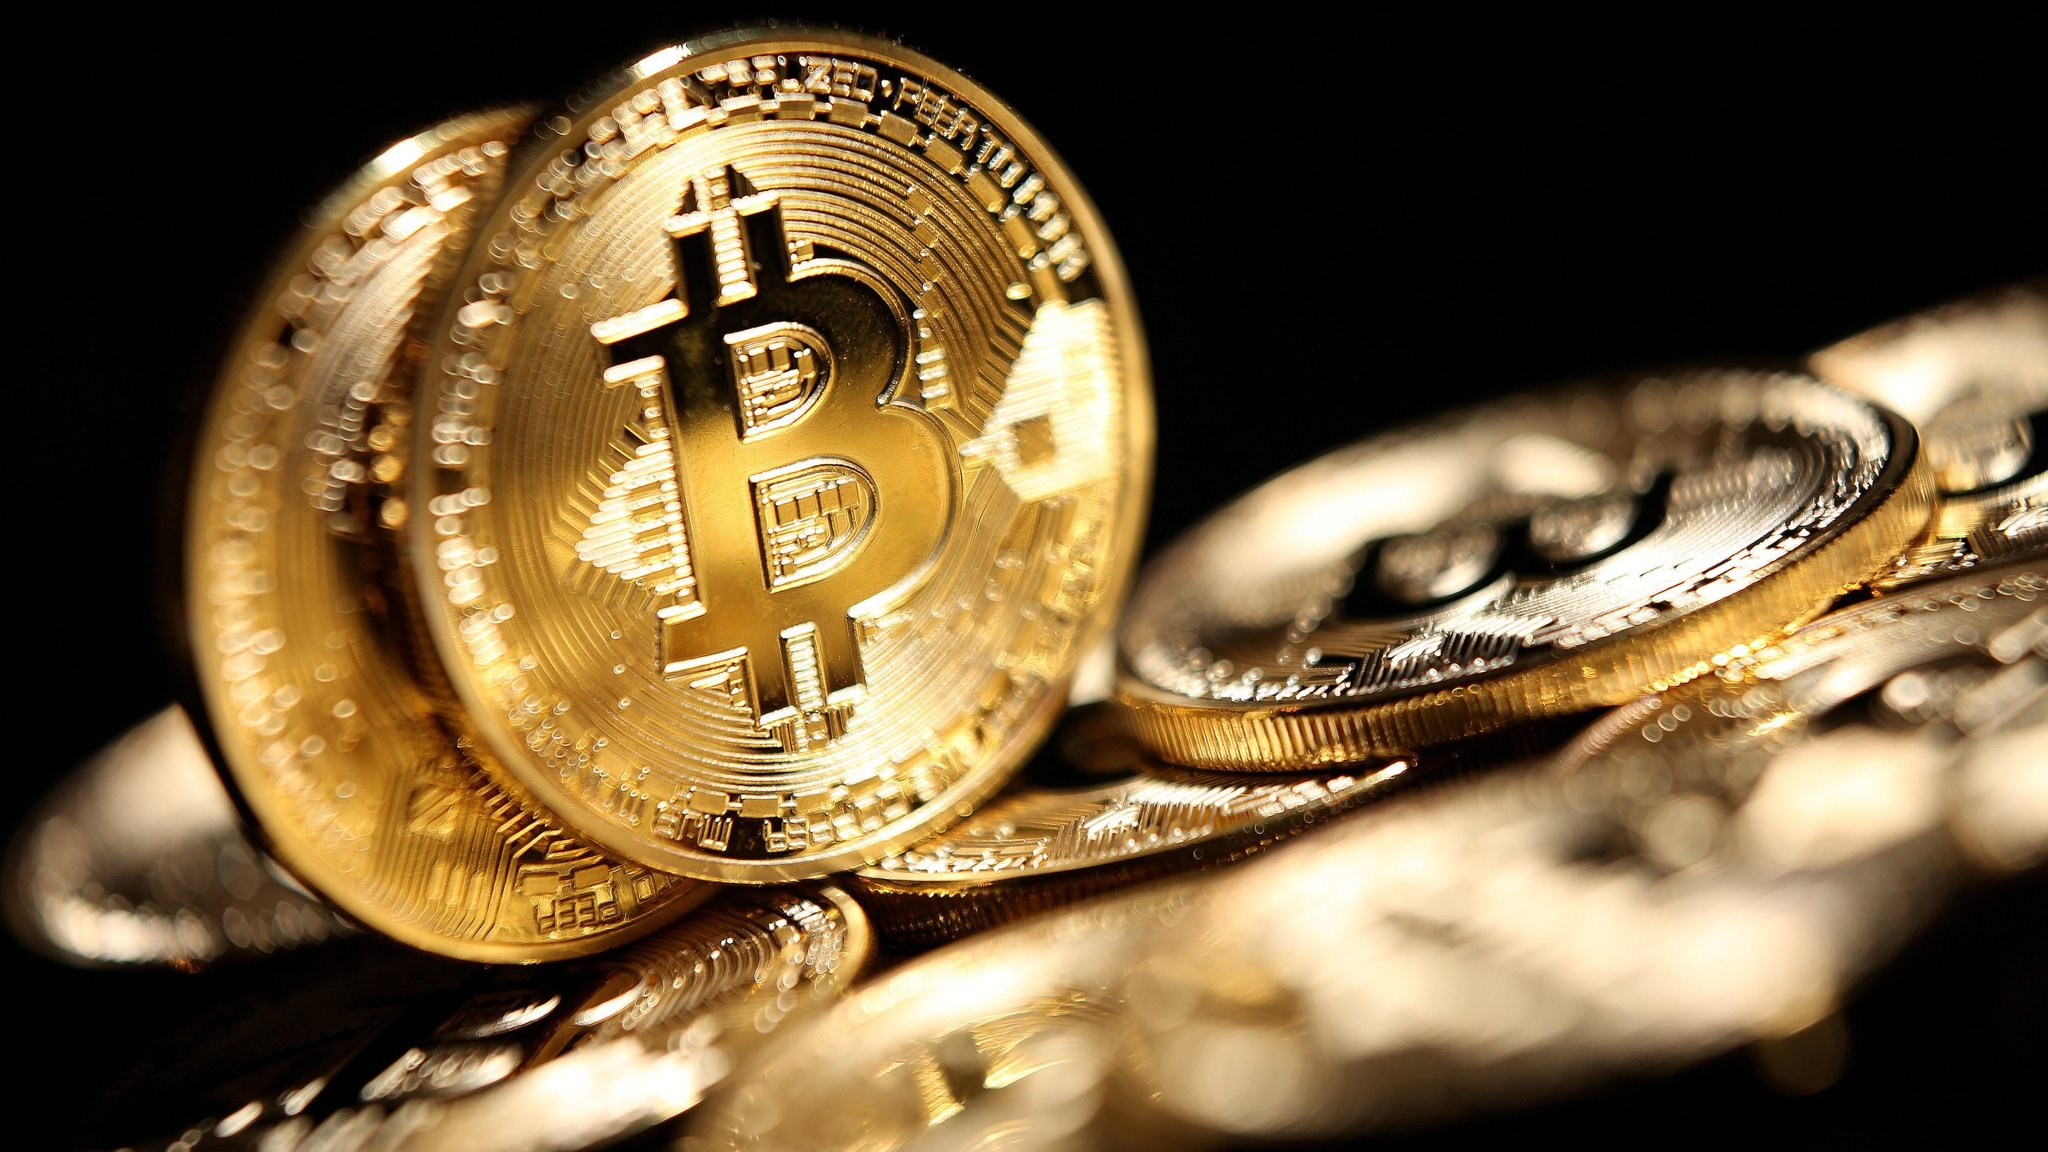 Bitcoin plunges below $10,000 in worst 2-day rout in 3 years